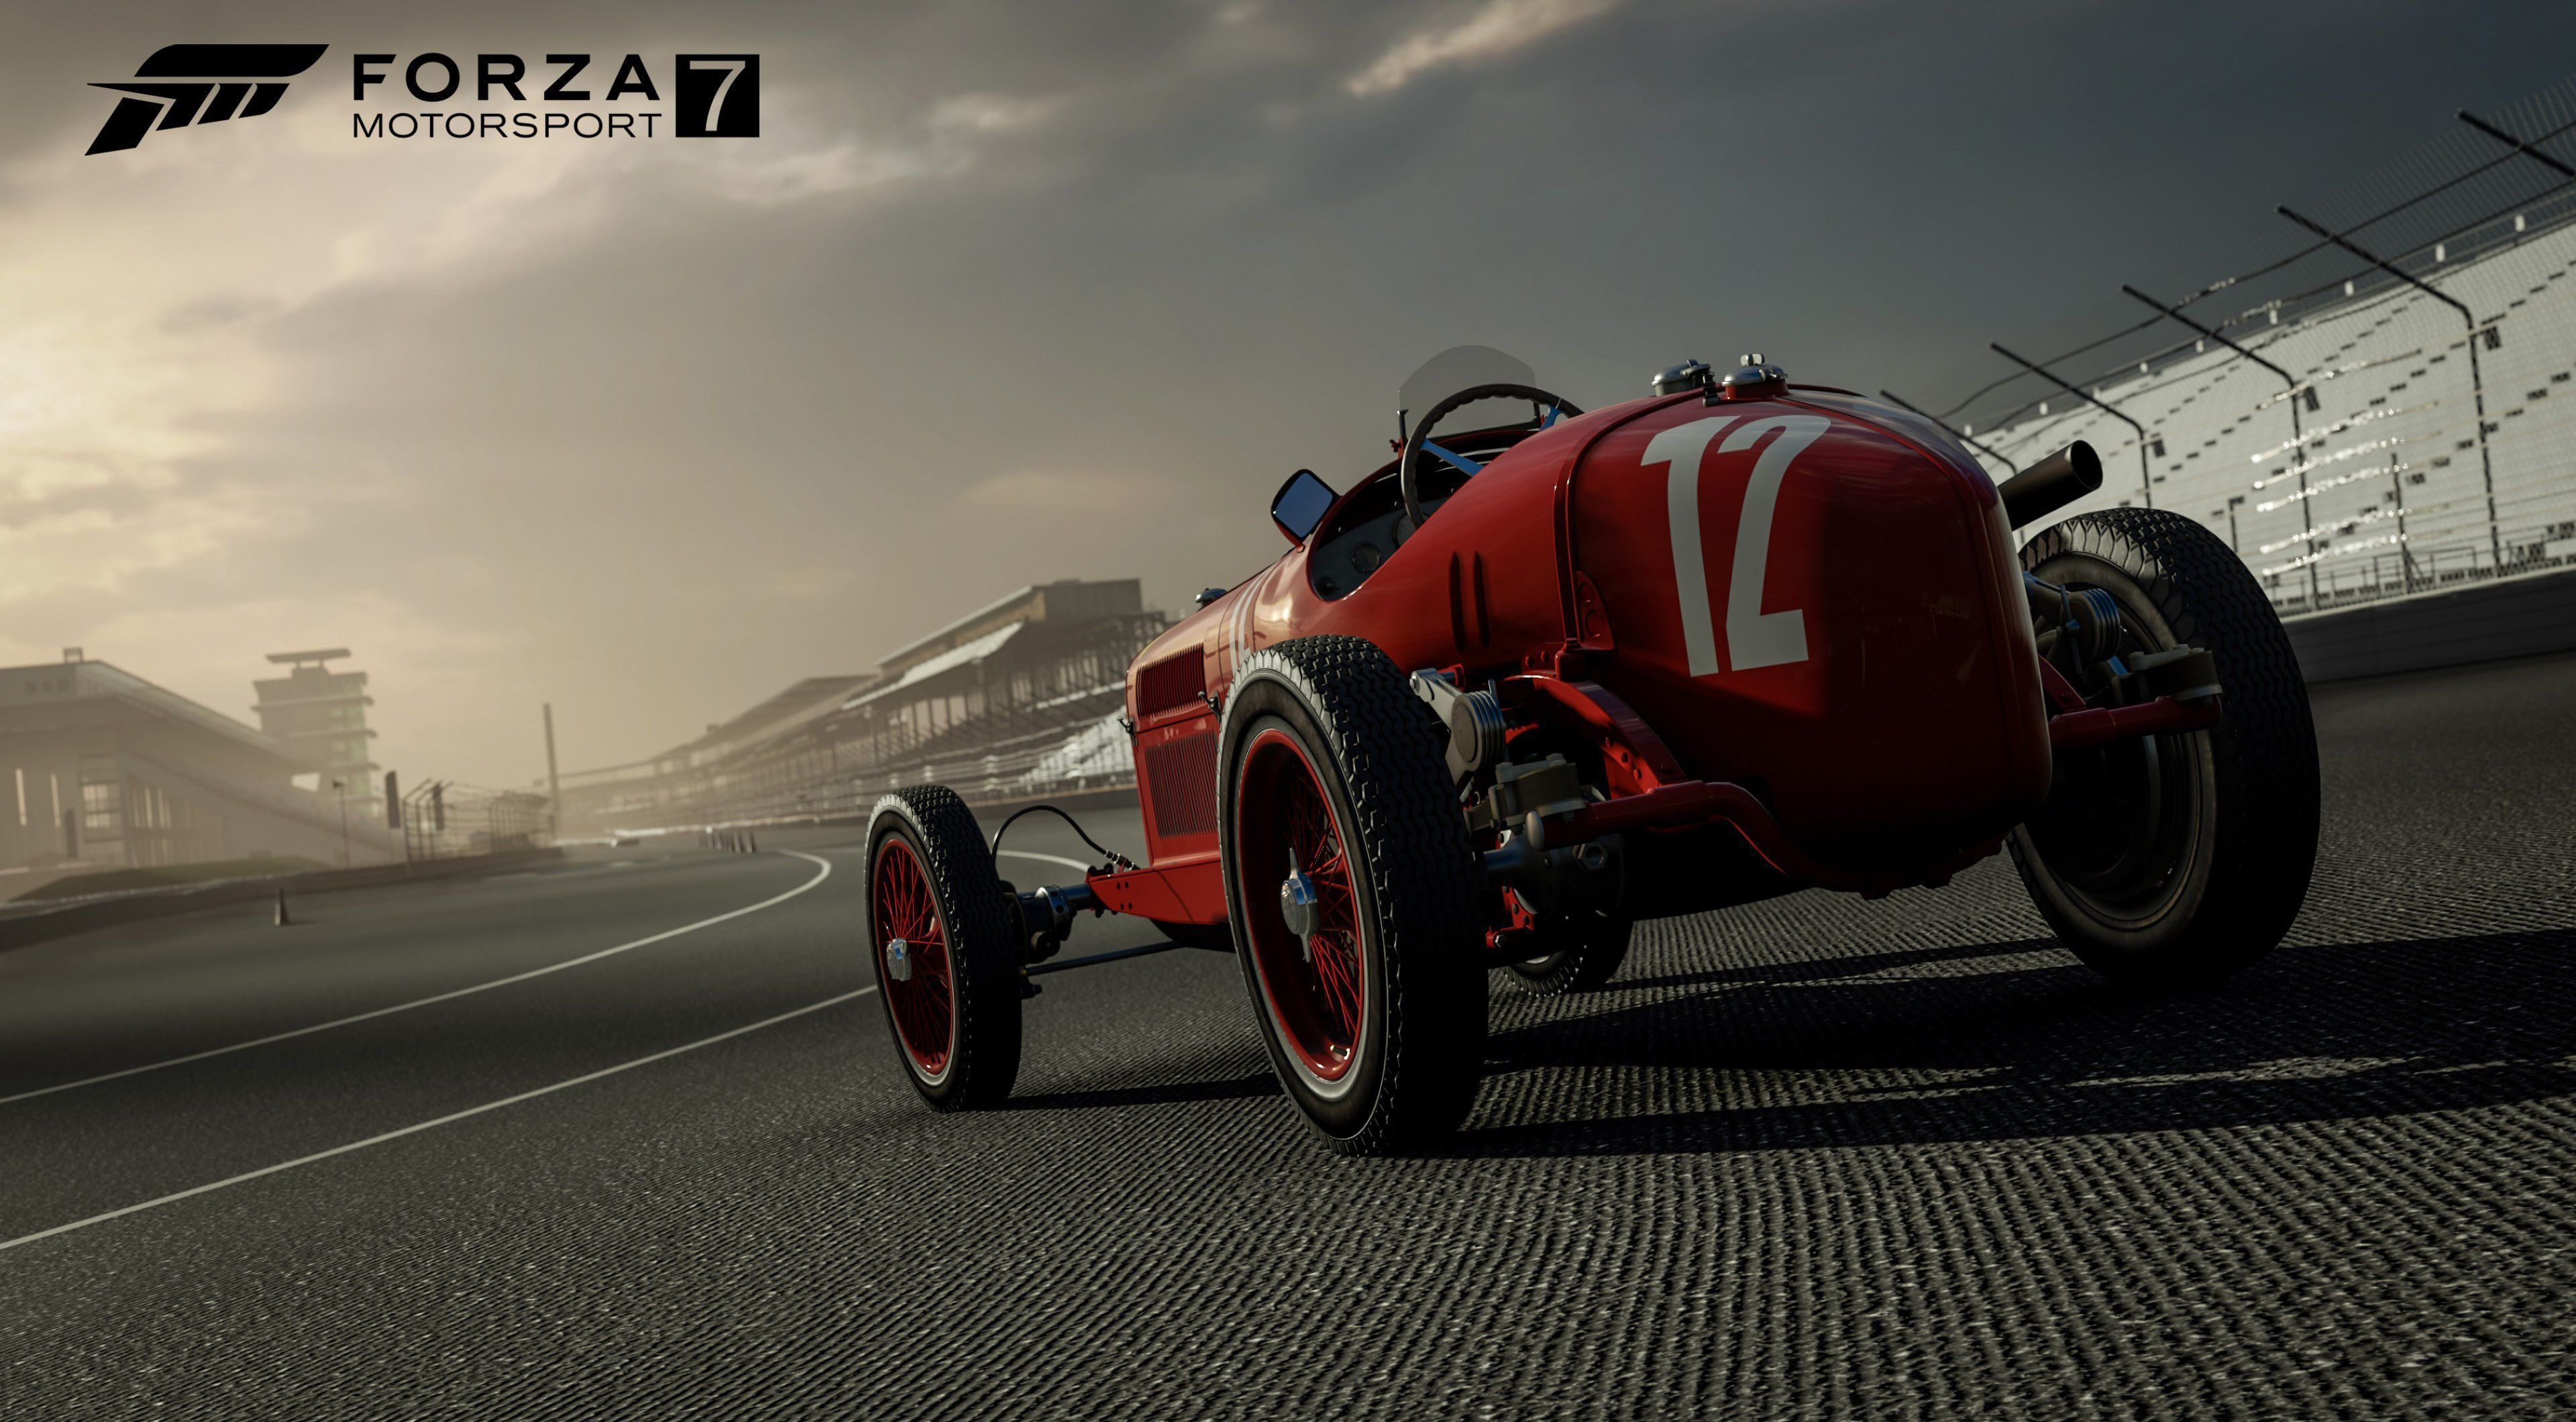 Forza Motorsport 7 Wallpaper Pack